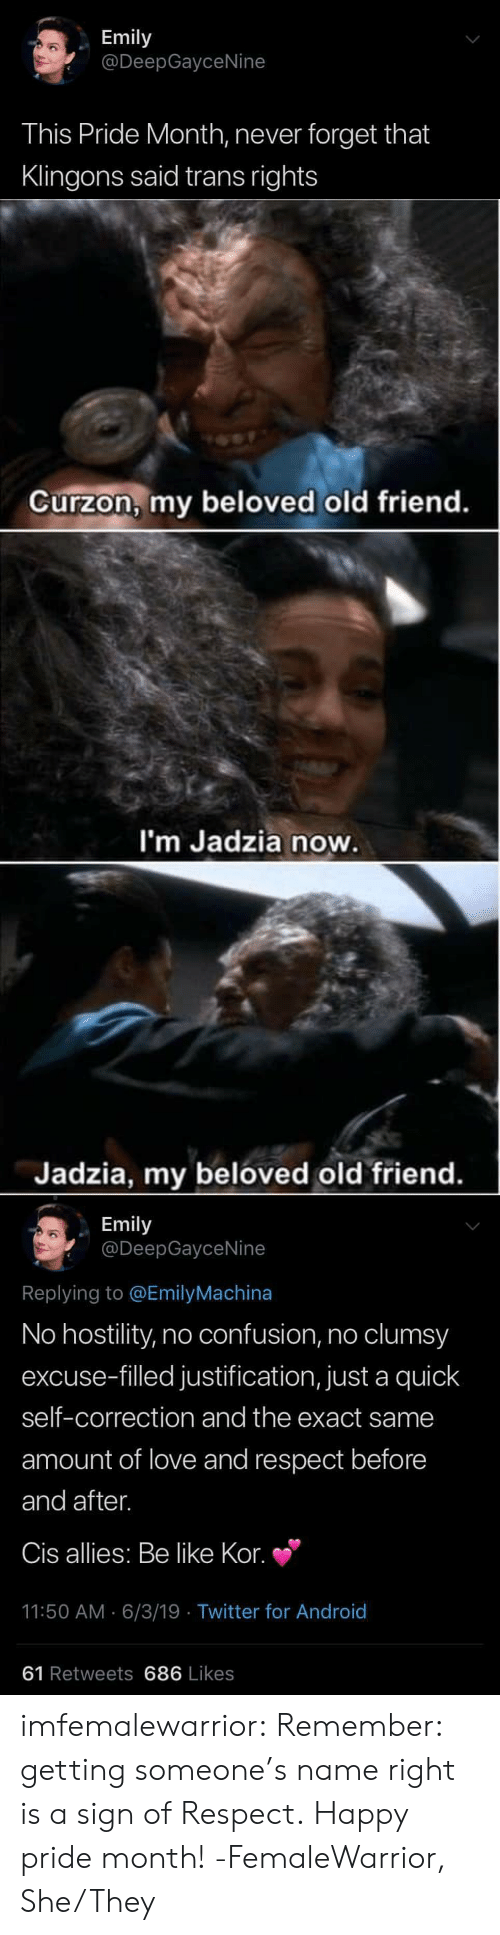 Correction: Emily  @DeepGayceNine  This Pride Month, never forget that  Klingons said trans rights   Curzon, my beloved old friend.  I'm Jadzia now.  Jadzia, my beloved old friend.   Emily  @DeepGayceNine  Replying to @EmilyMachina  No hostility, no confusion, no clumsy  excuse-filled justification, just a quick  self-correction and the exact same  amount of love and respect before  and after.  Cis allies: Be like Kor.  11:50 AM 6/3/19 Twitter for And roid  61 Retweets 686 Likes imfemalewarrior:  Remember: getting someone's name right is a sign of Respect. Happy pride month! -FemaleWarrior, She/They